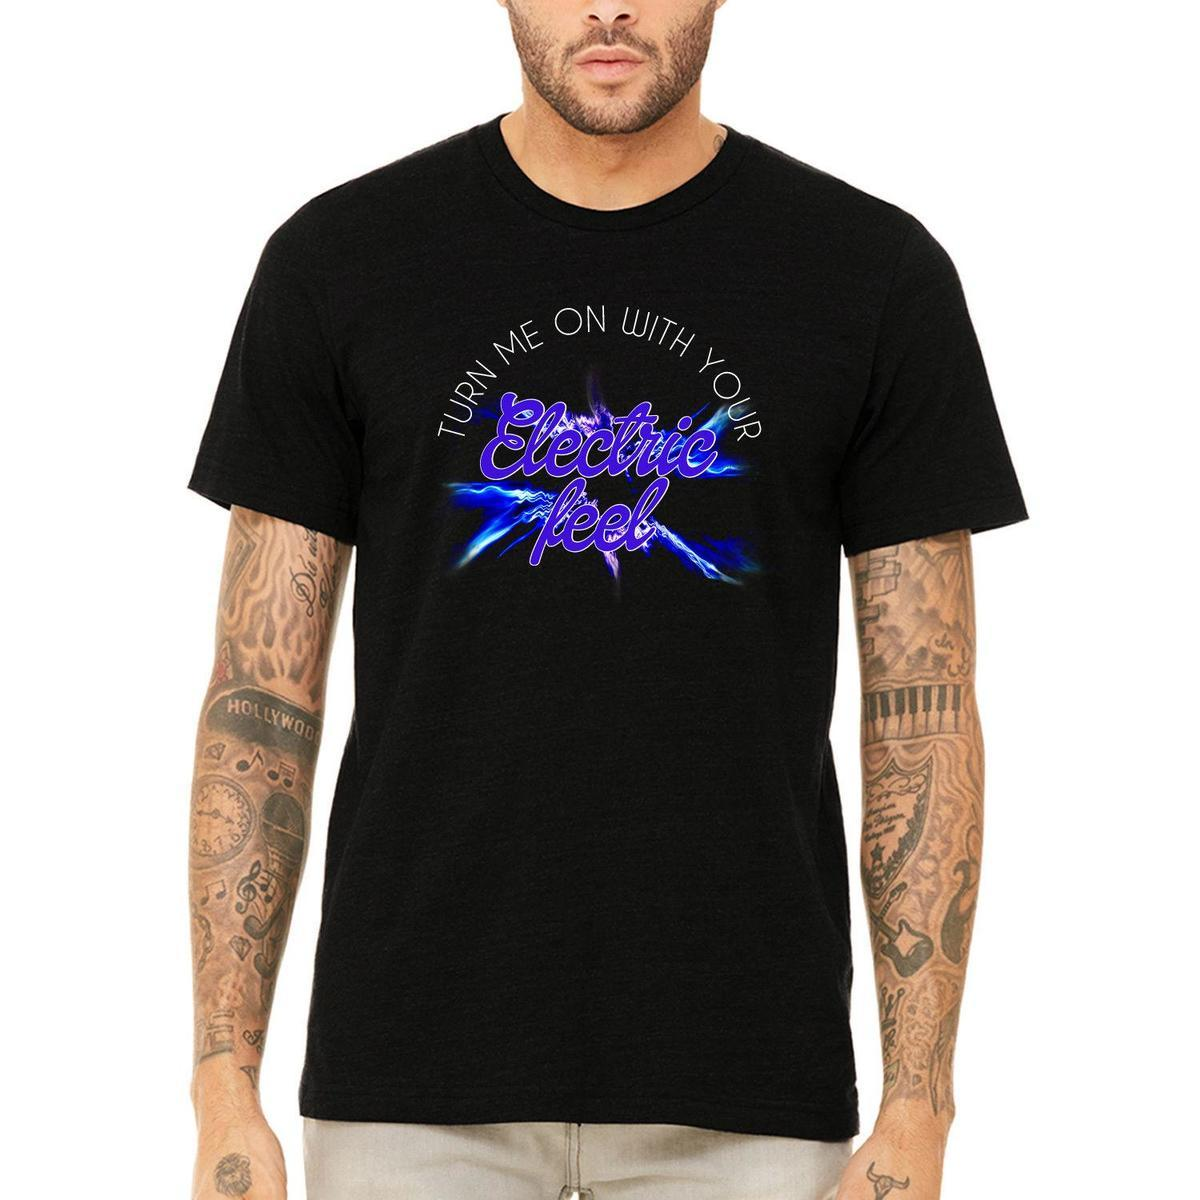 4ad1601d24112 Misky   Stone Turn Me On With Your Electric Feel Vibrant Unisex T Shirt  TeeMens 2018 Fashion Brand T Shirt O Neck 100%cotton T Shirt T Shirt T Tee  Shirts ...